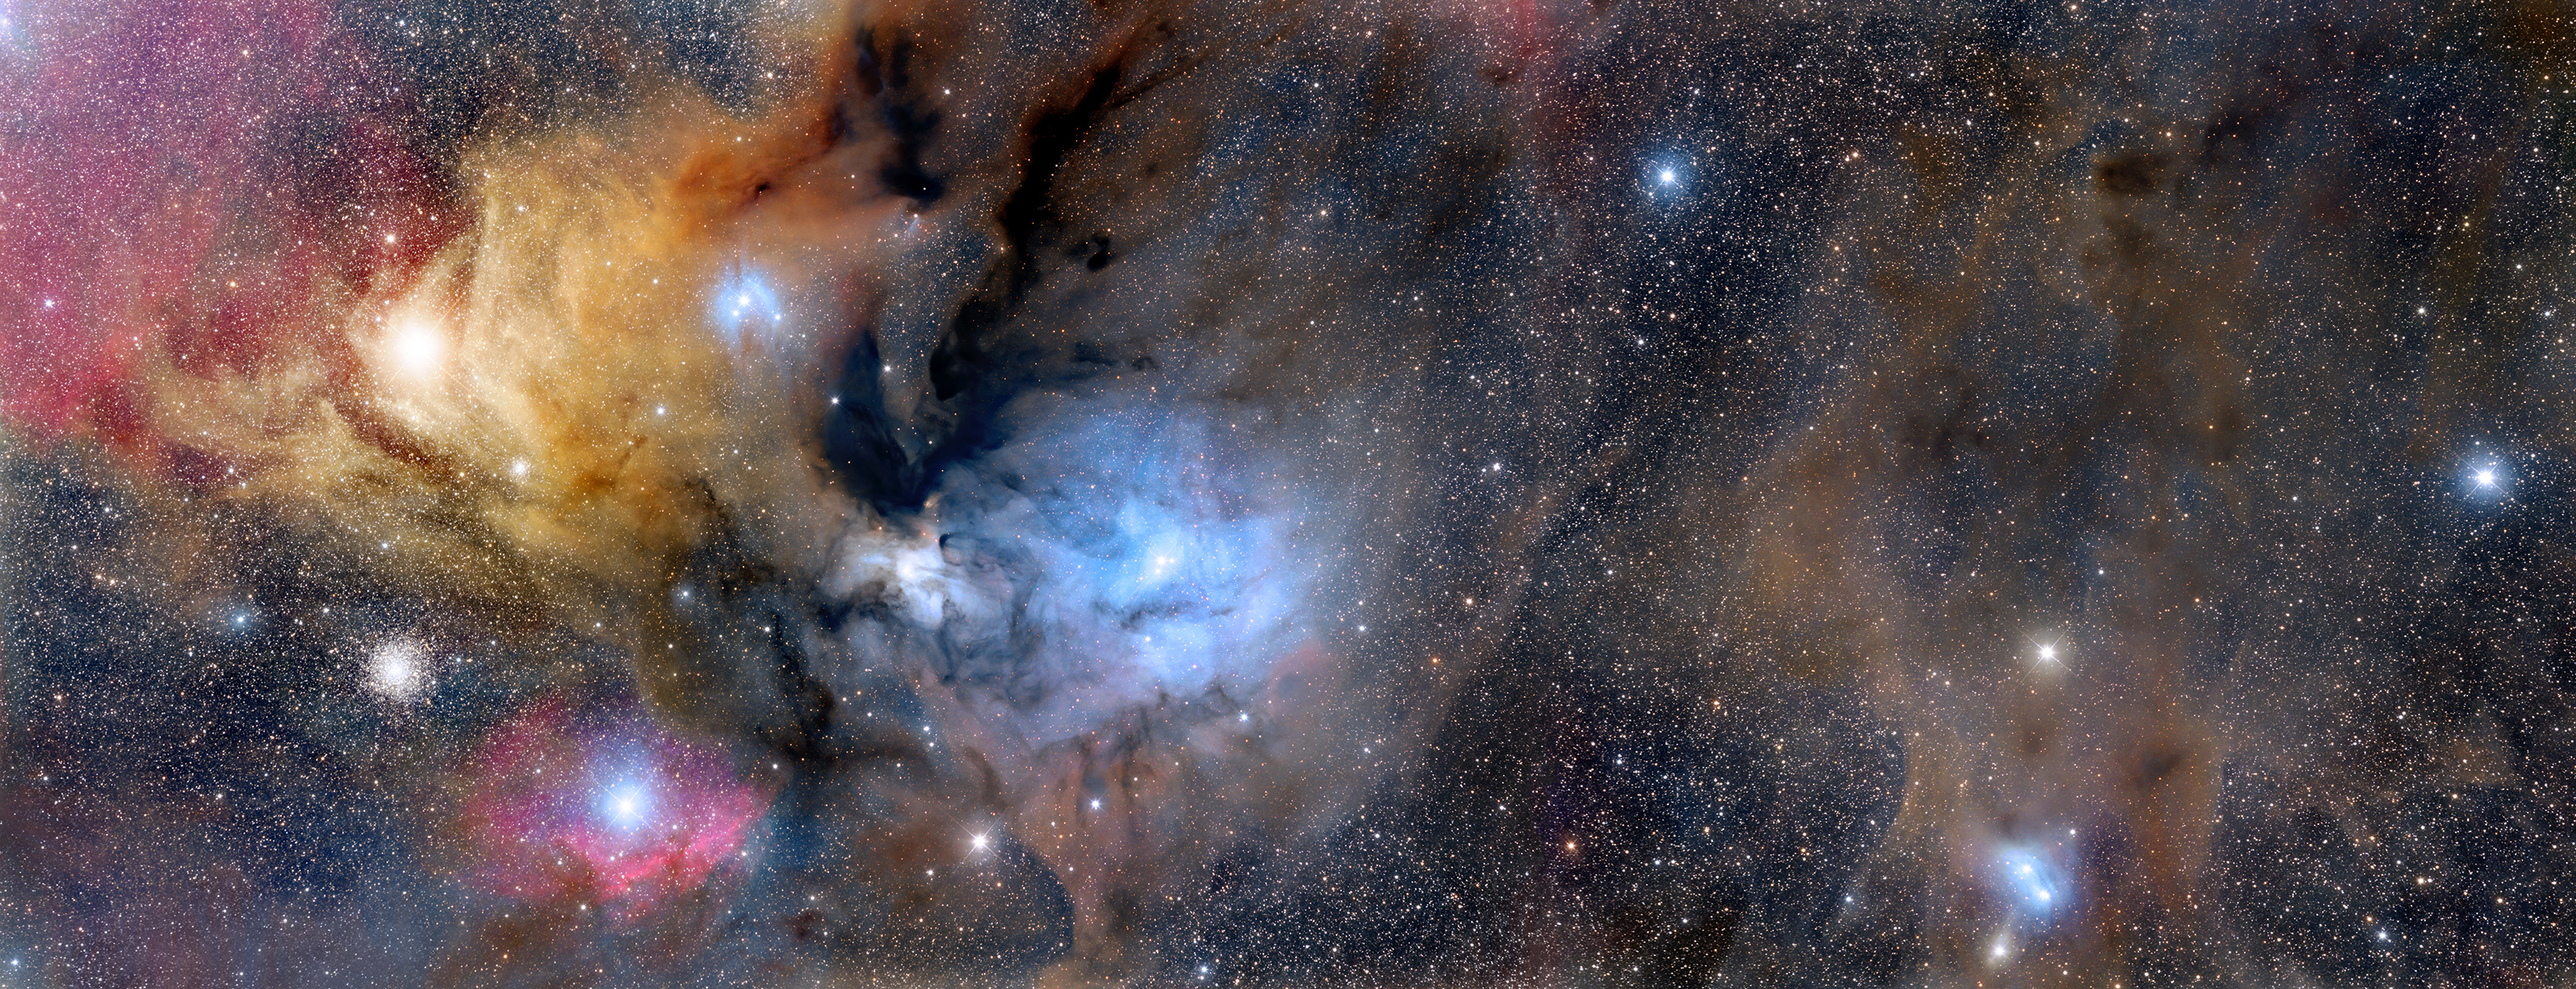 Antares is the Heart of the Scorpion | Star cluster, Star